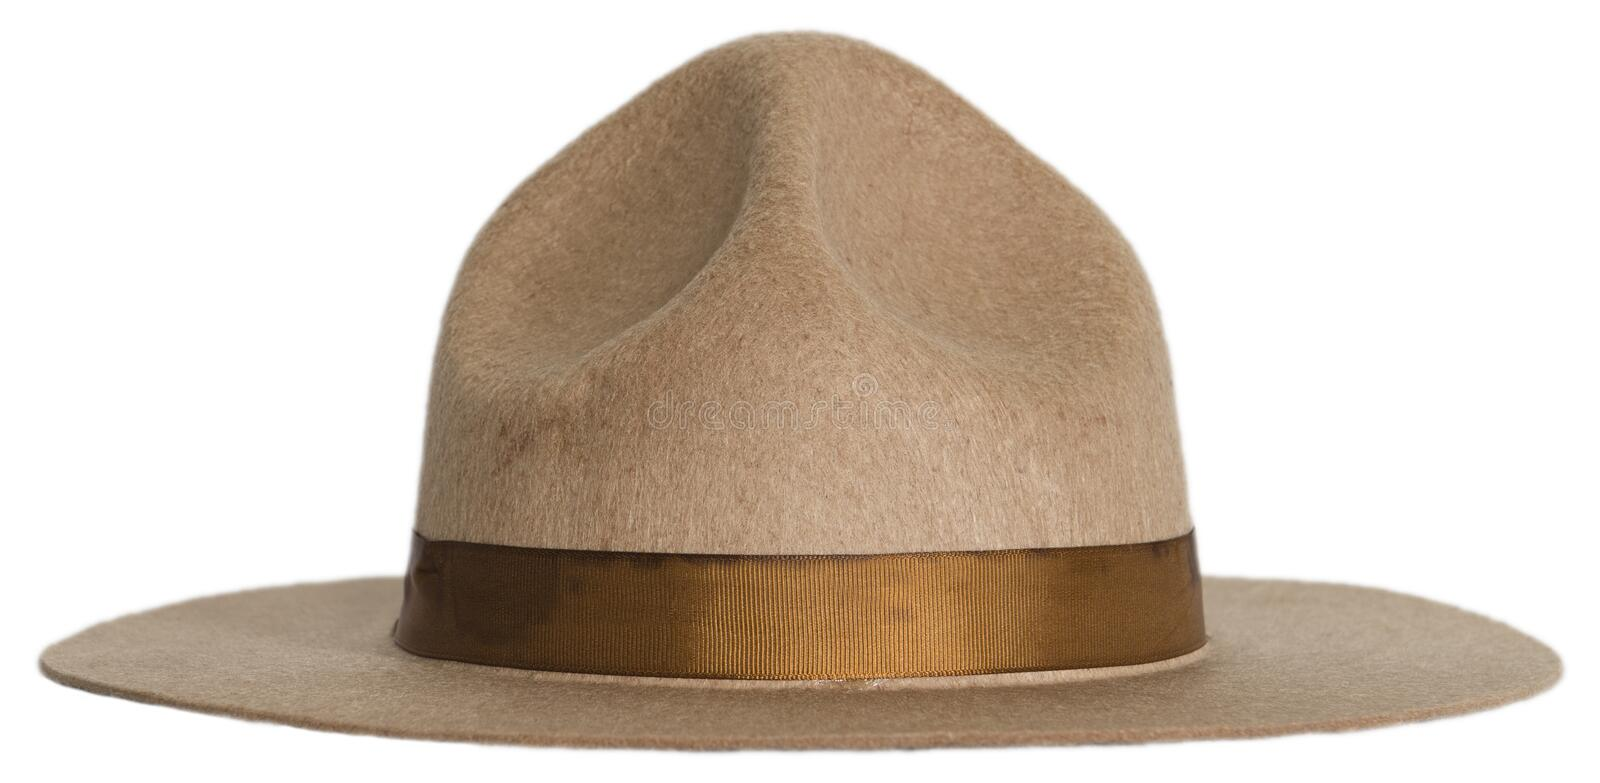 Smokey the Bear or Forest Ranger hat isolated. Smokey the bear style hat worn by a forest ranger, national park service employee, or a county sheriff. Isolated stock photography